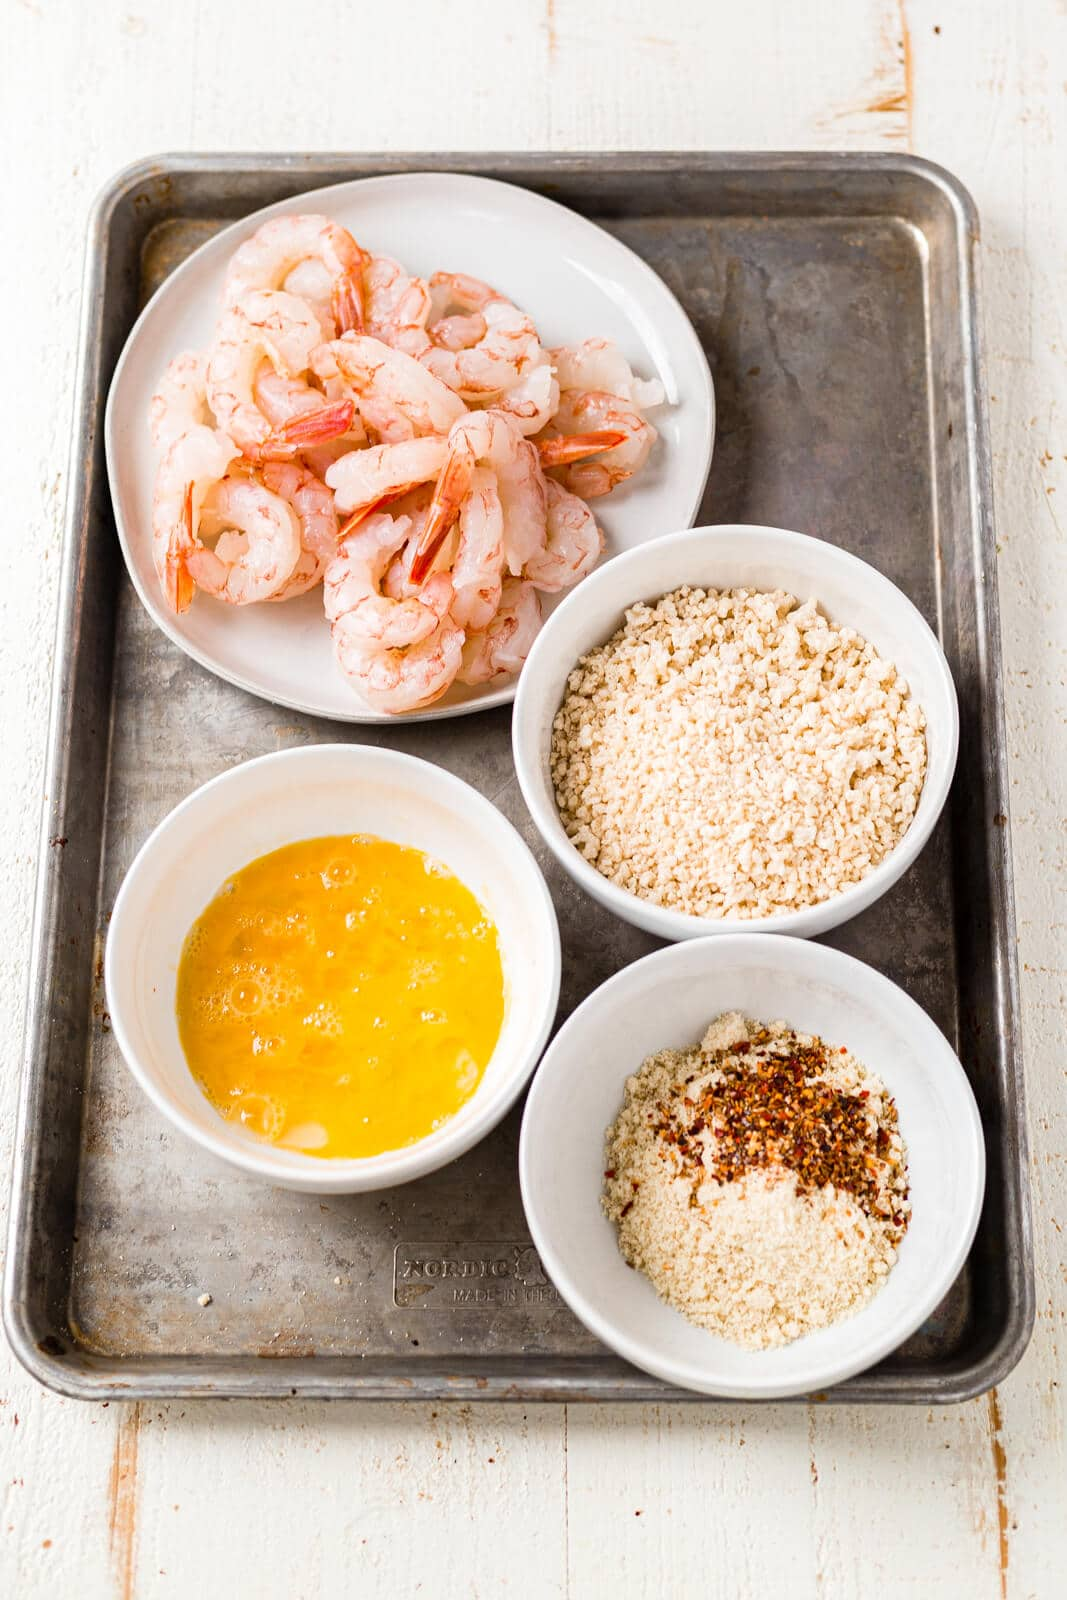 all of the ingredients for breaded shrimp in the air fryer shrimp sitting on a sheet pan before being breaded and cooked